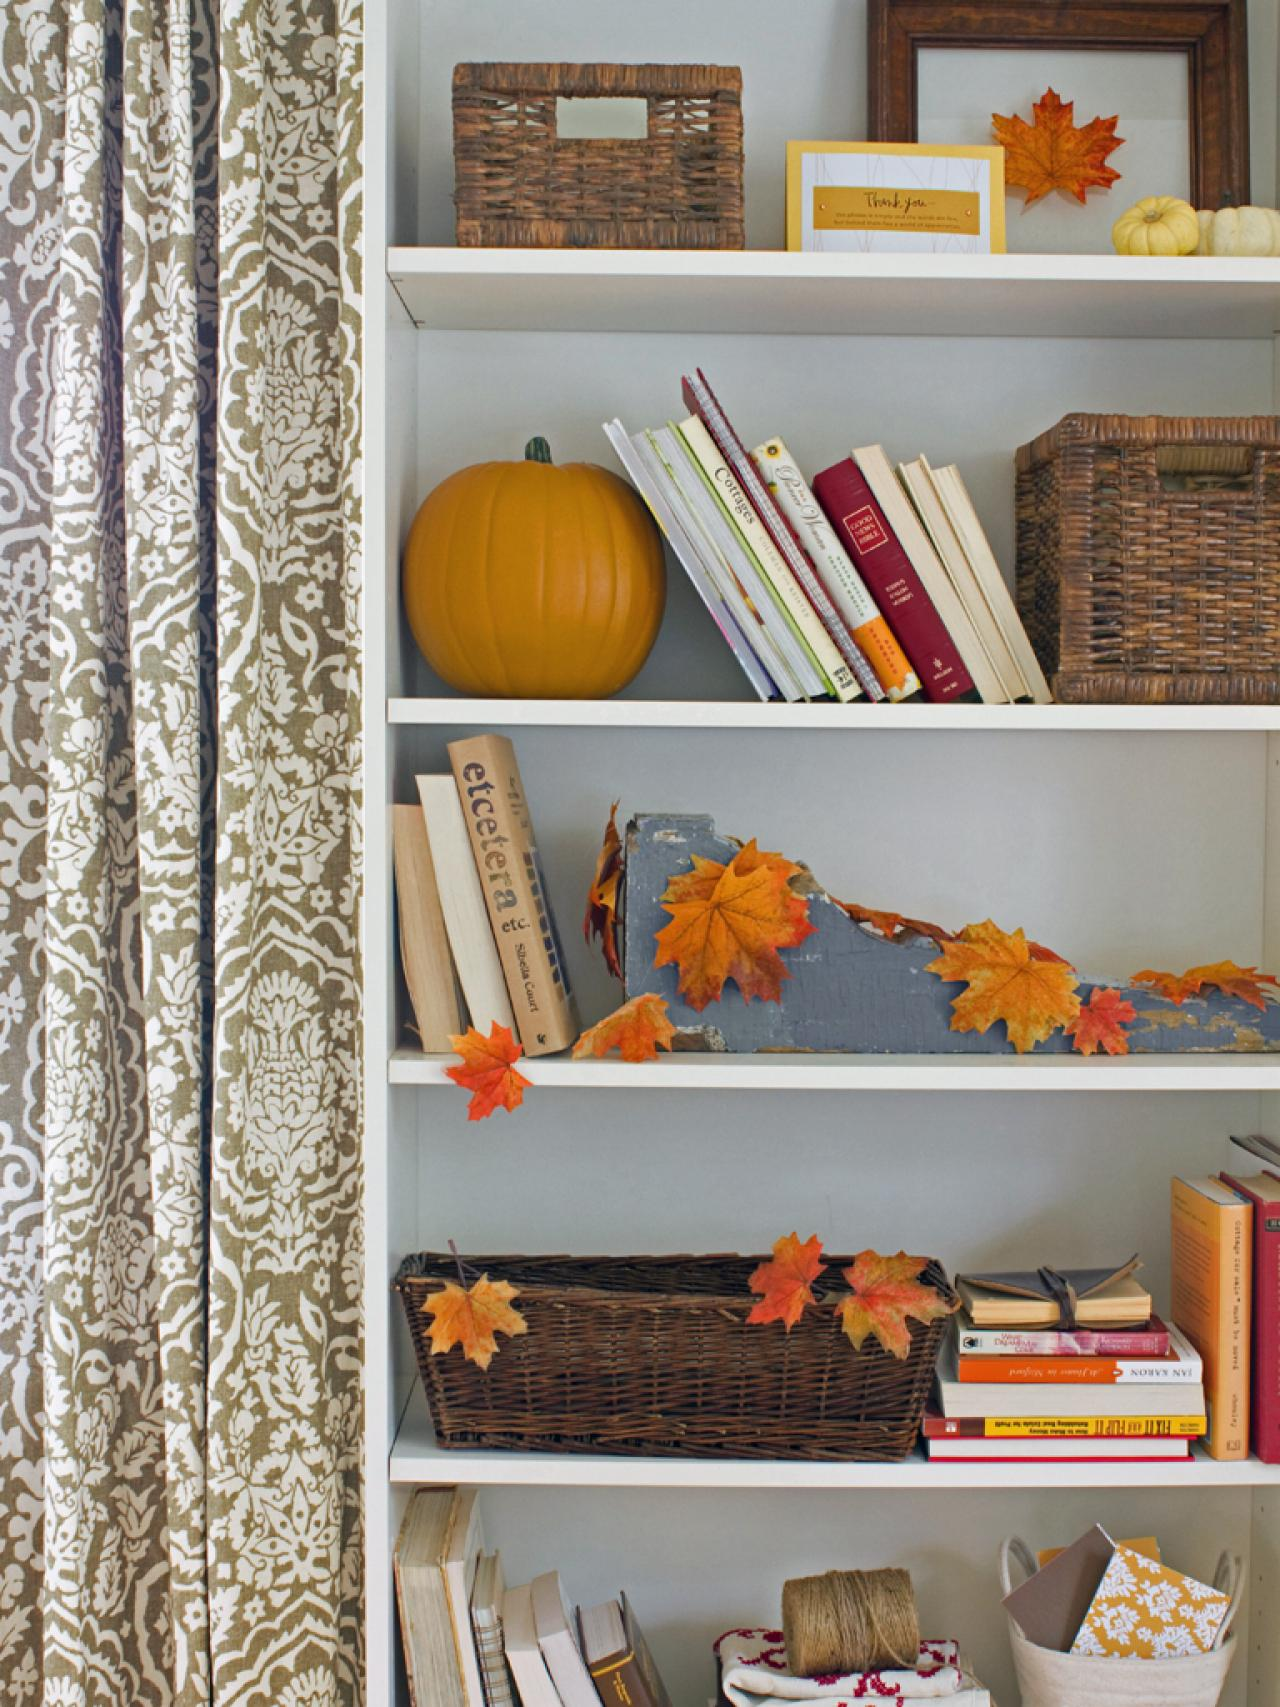 Fall Door Decorations That Arent Wreaths Hgtvs Decorating Design Blog Hgtv